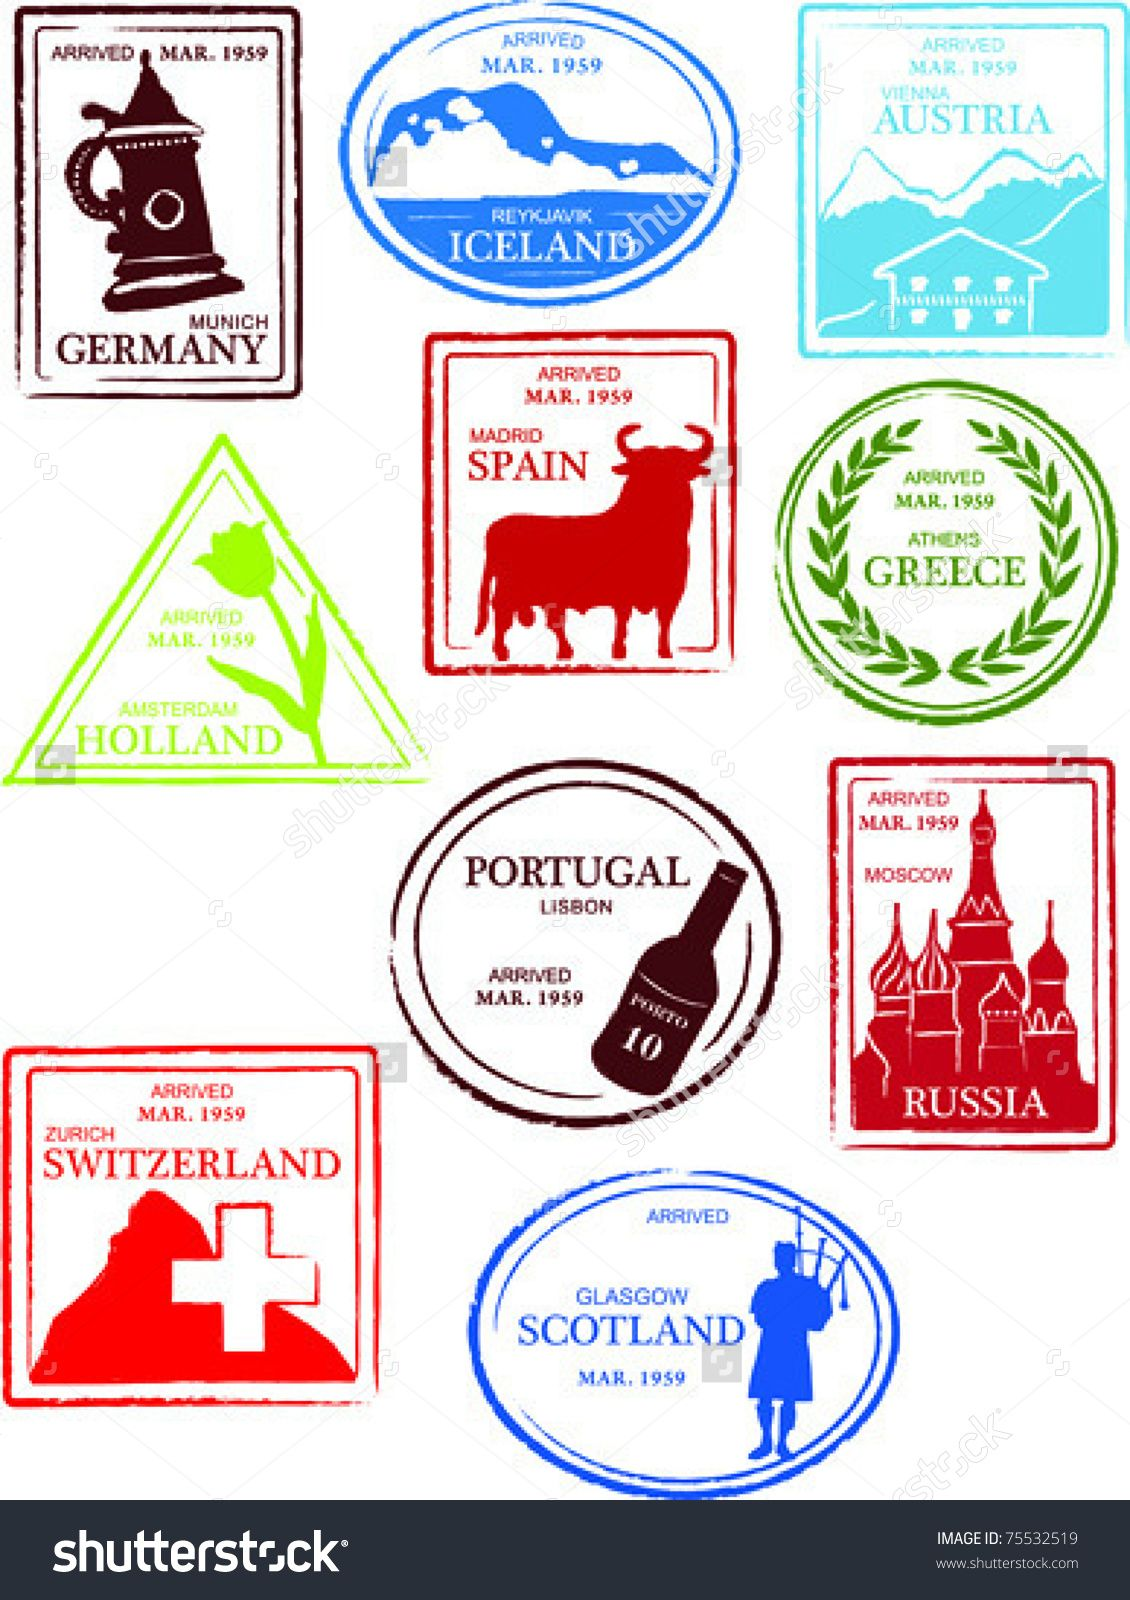 hight resolution of countries of the world passport stamps collect them all google search